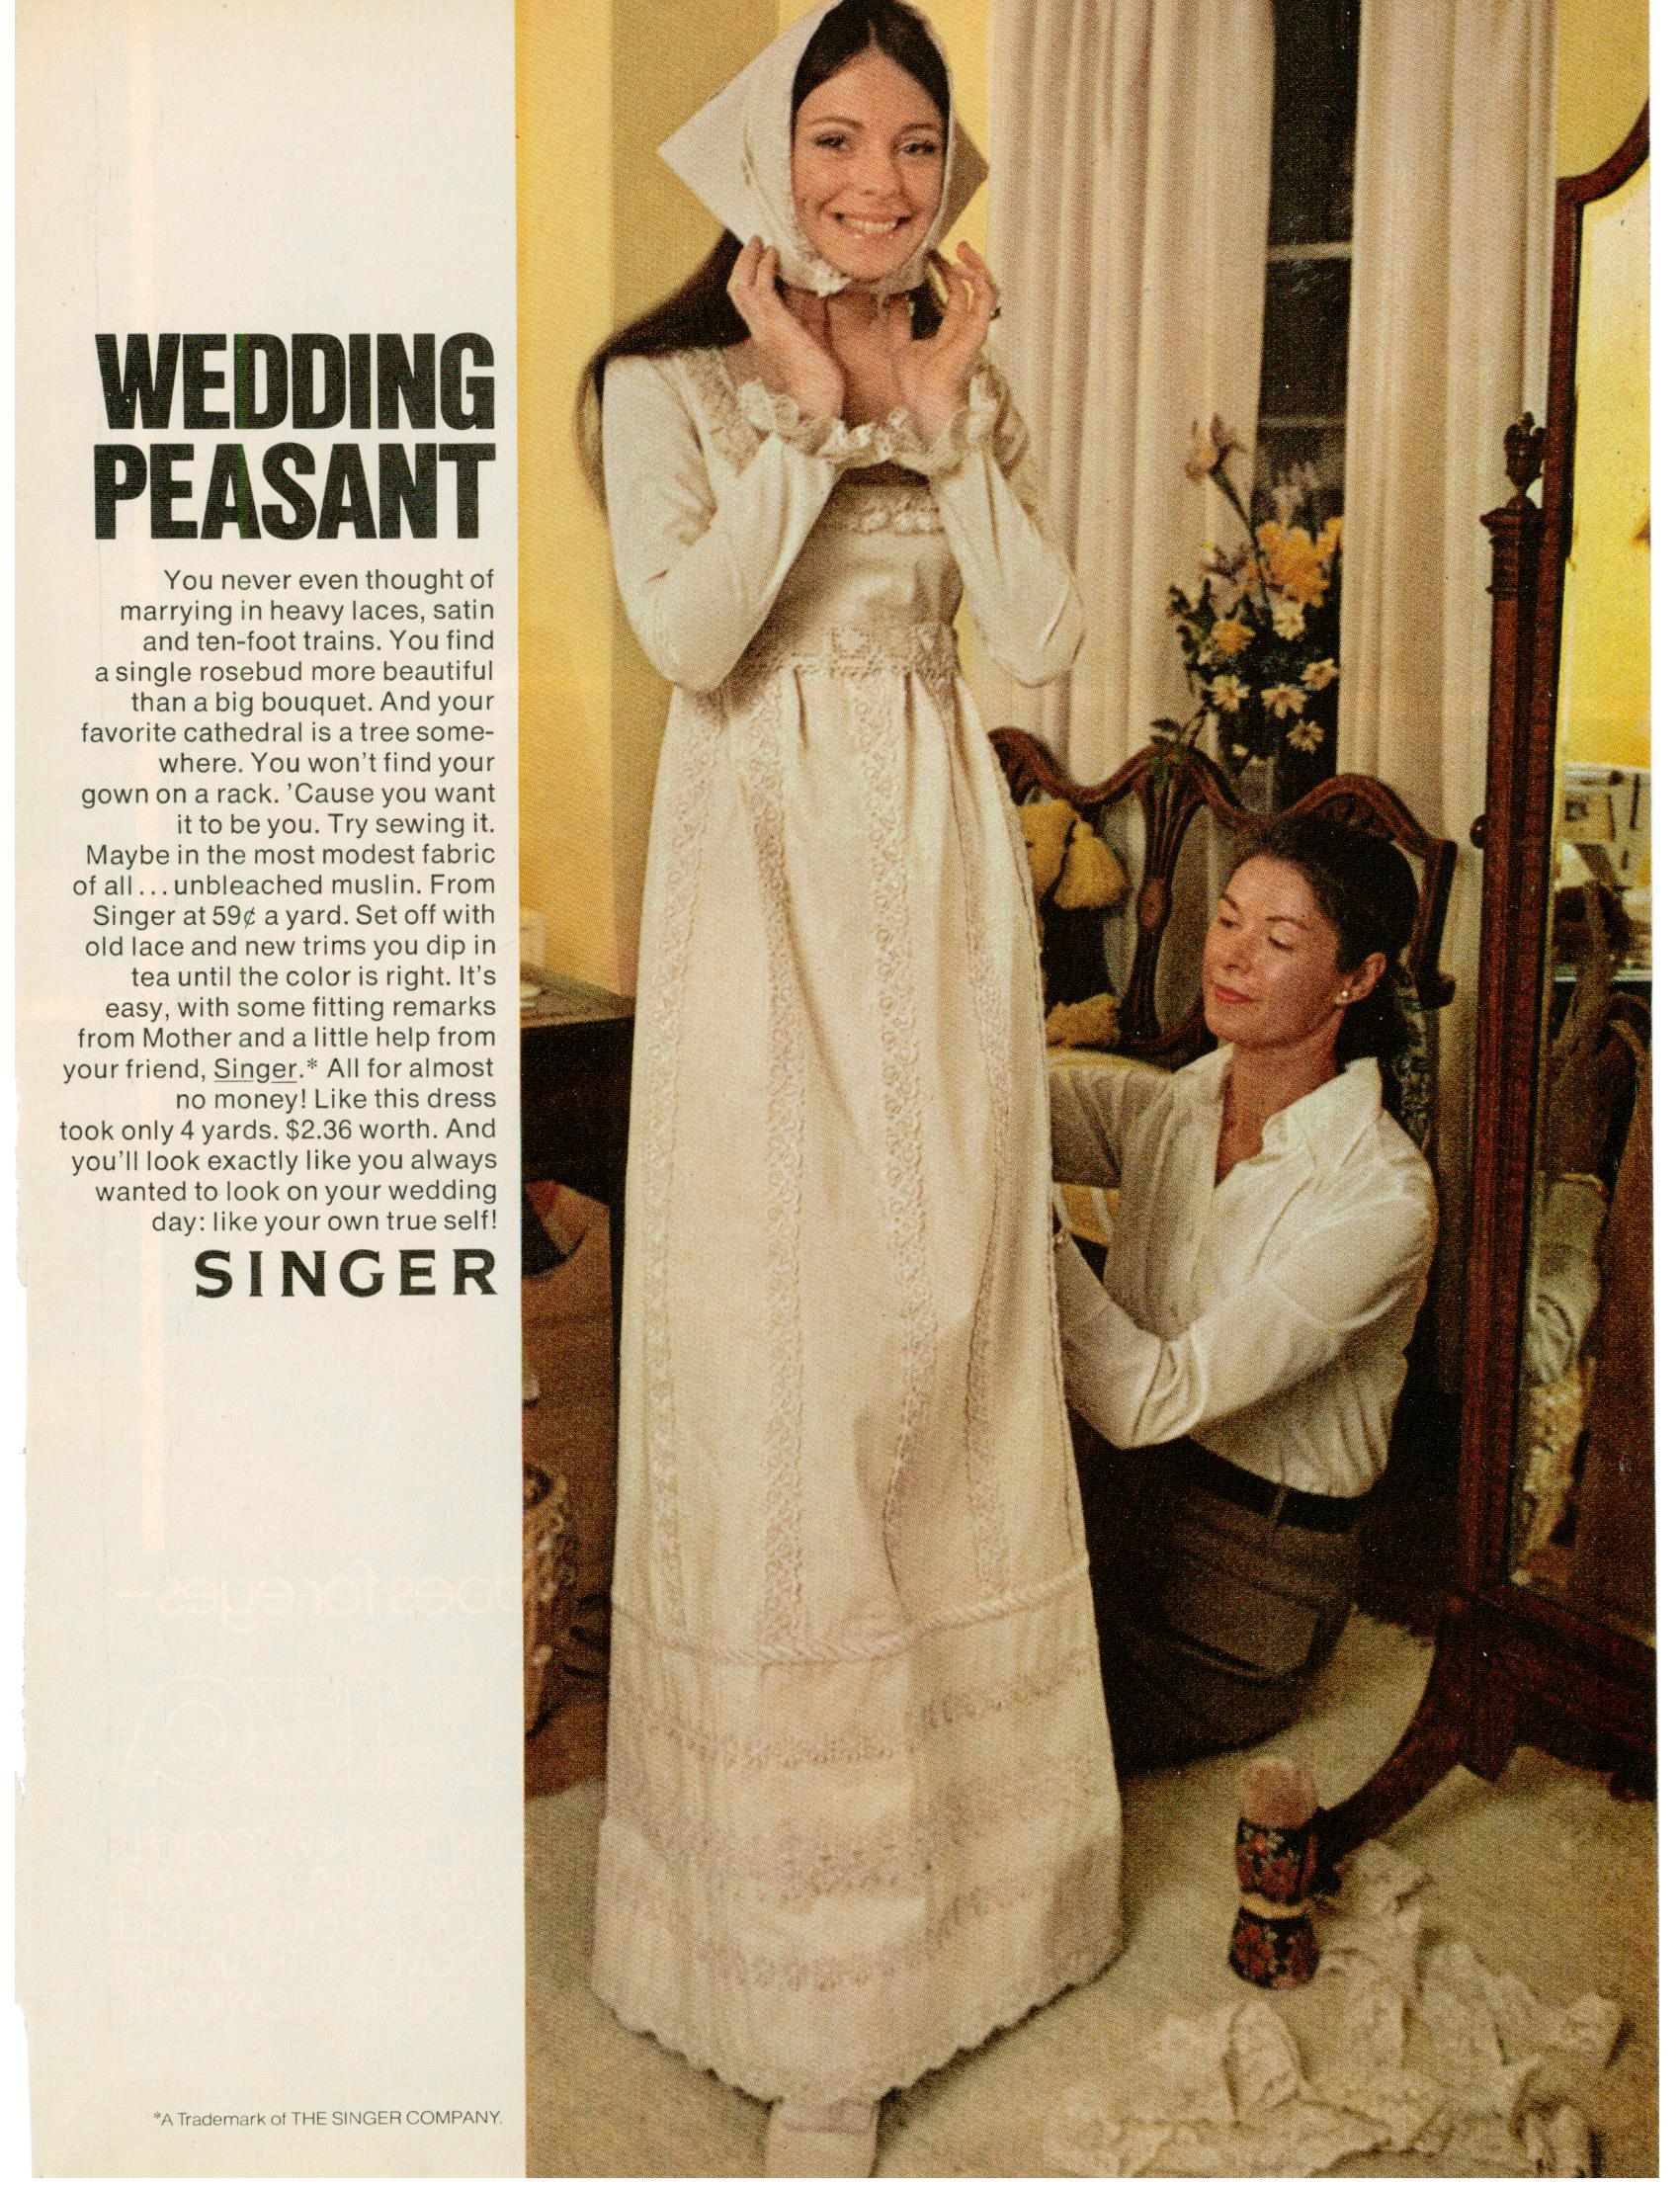 Singer Wedding Dress Singer Sewing Wedding Dress ad